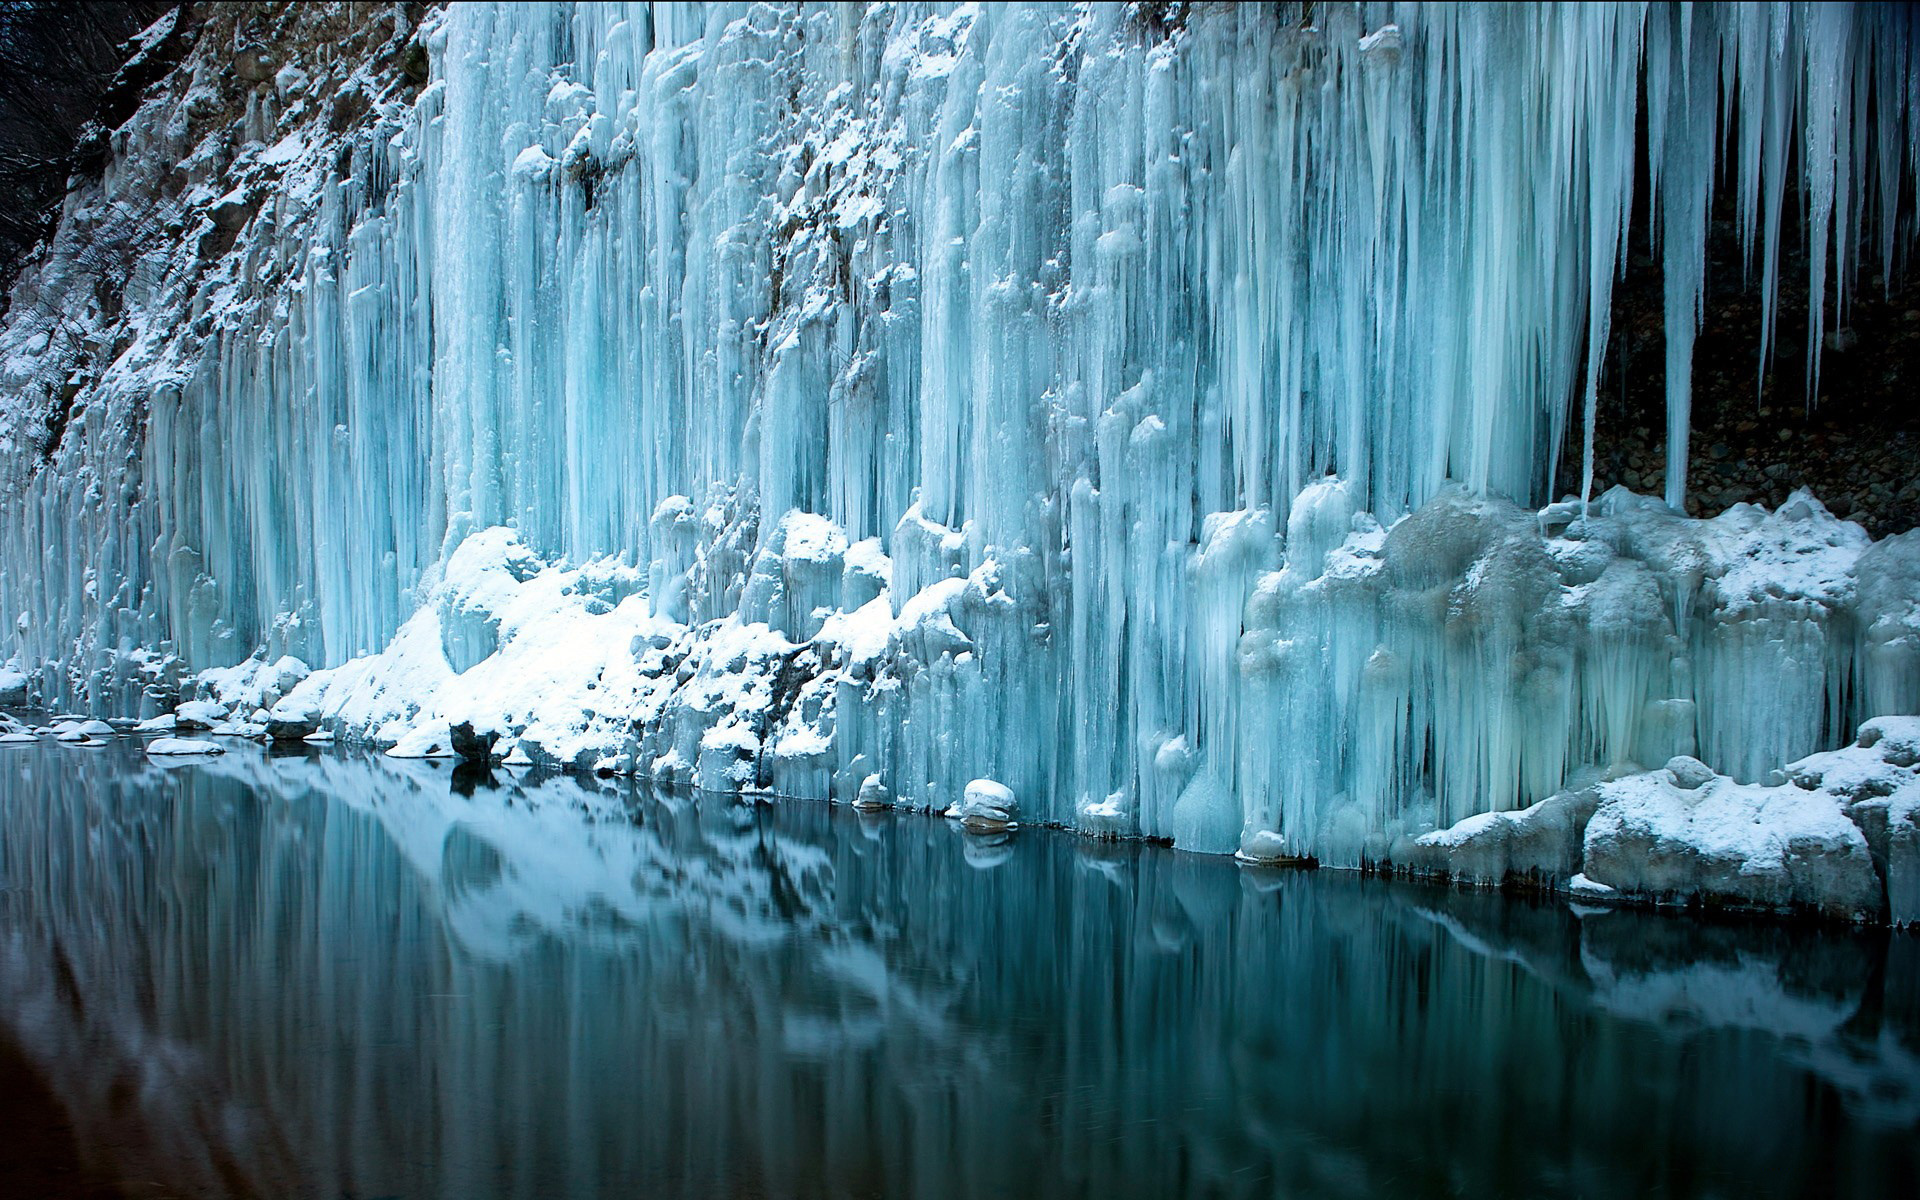 waterfall water reflection rivers freeze frozen snow winter wallpaper 1920x1200